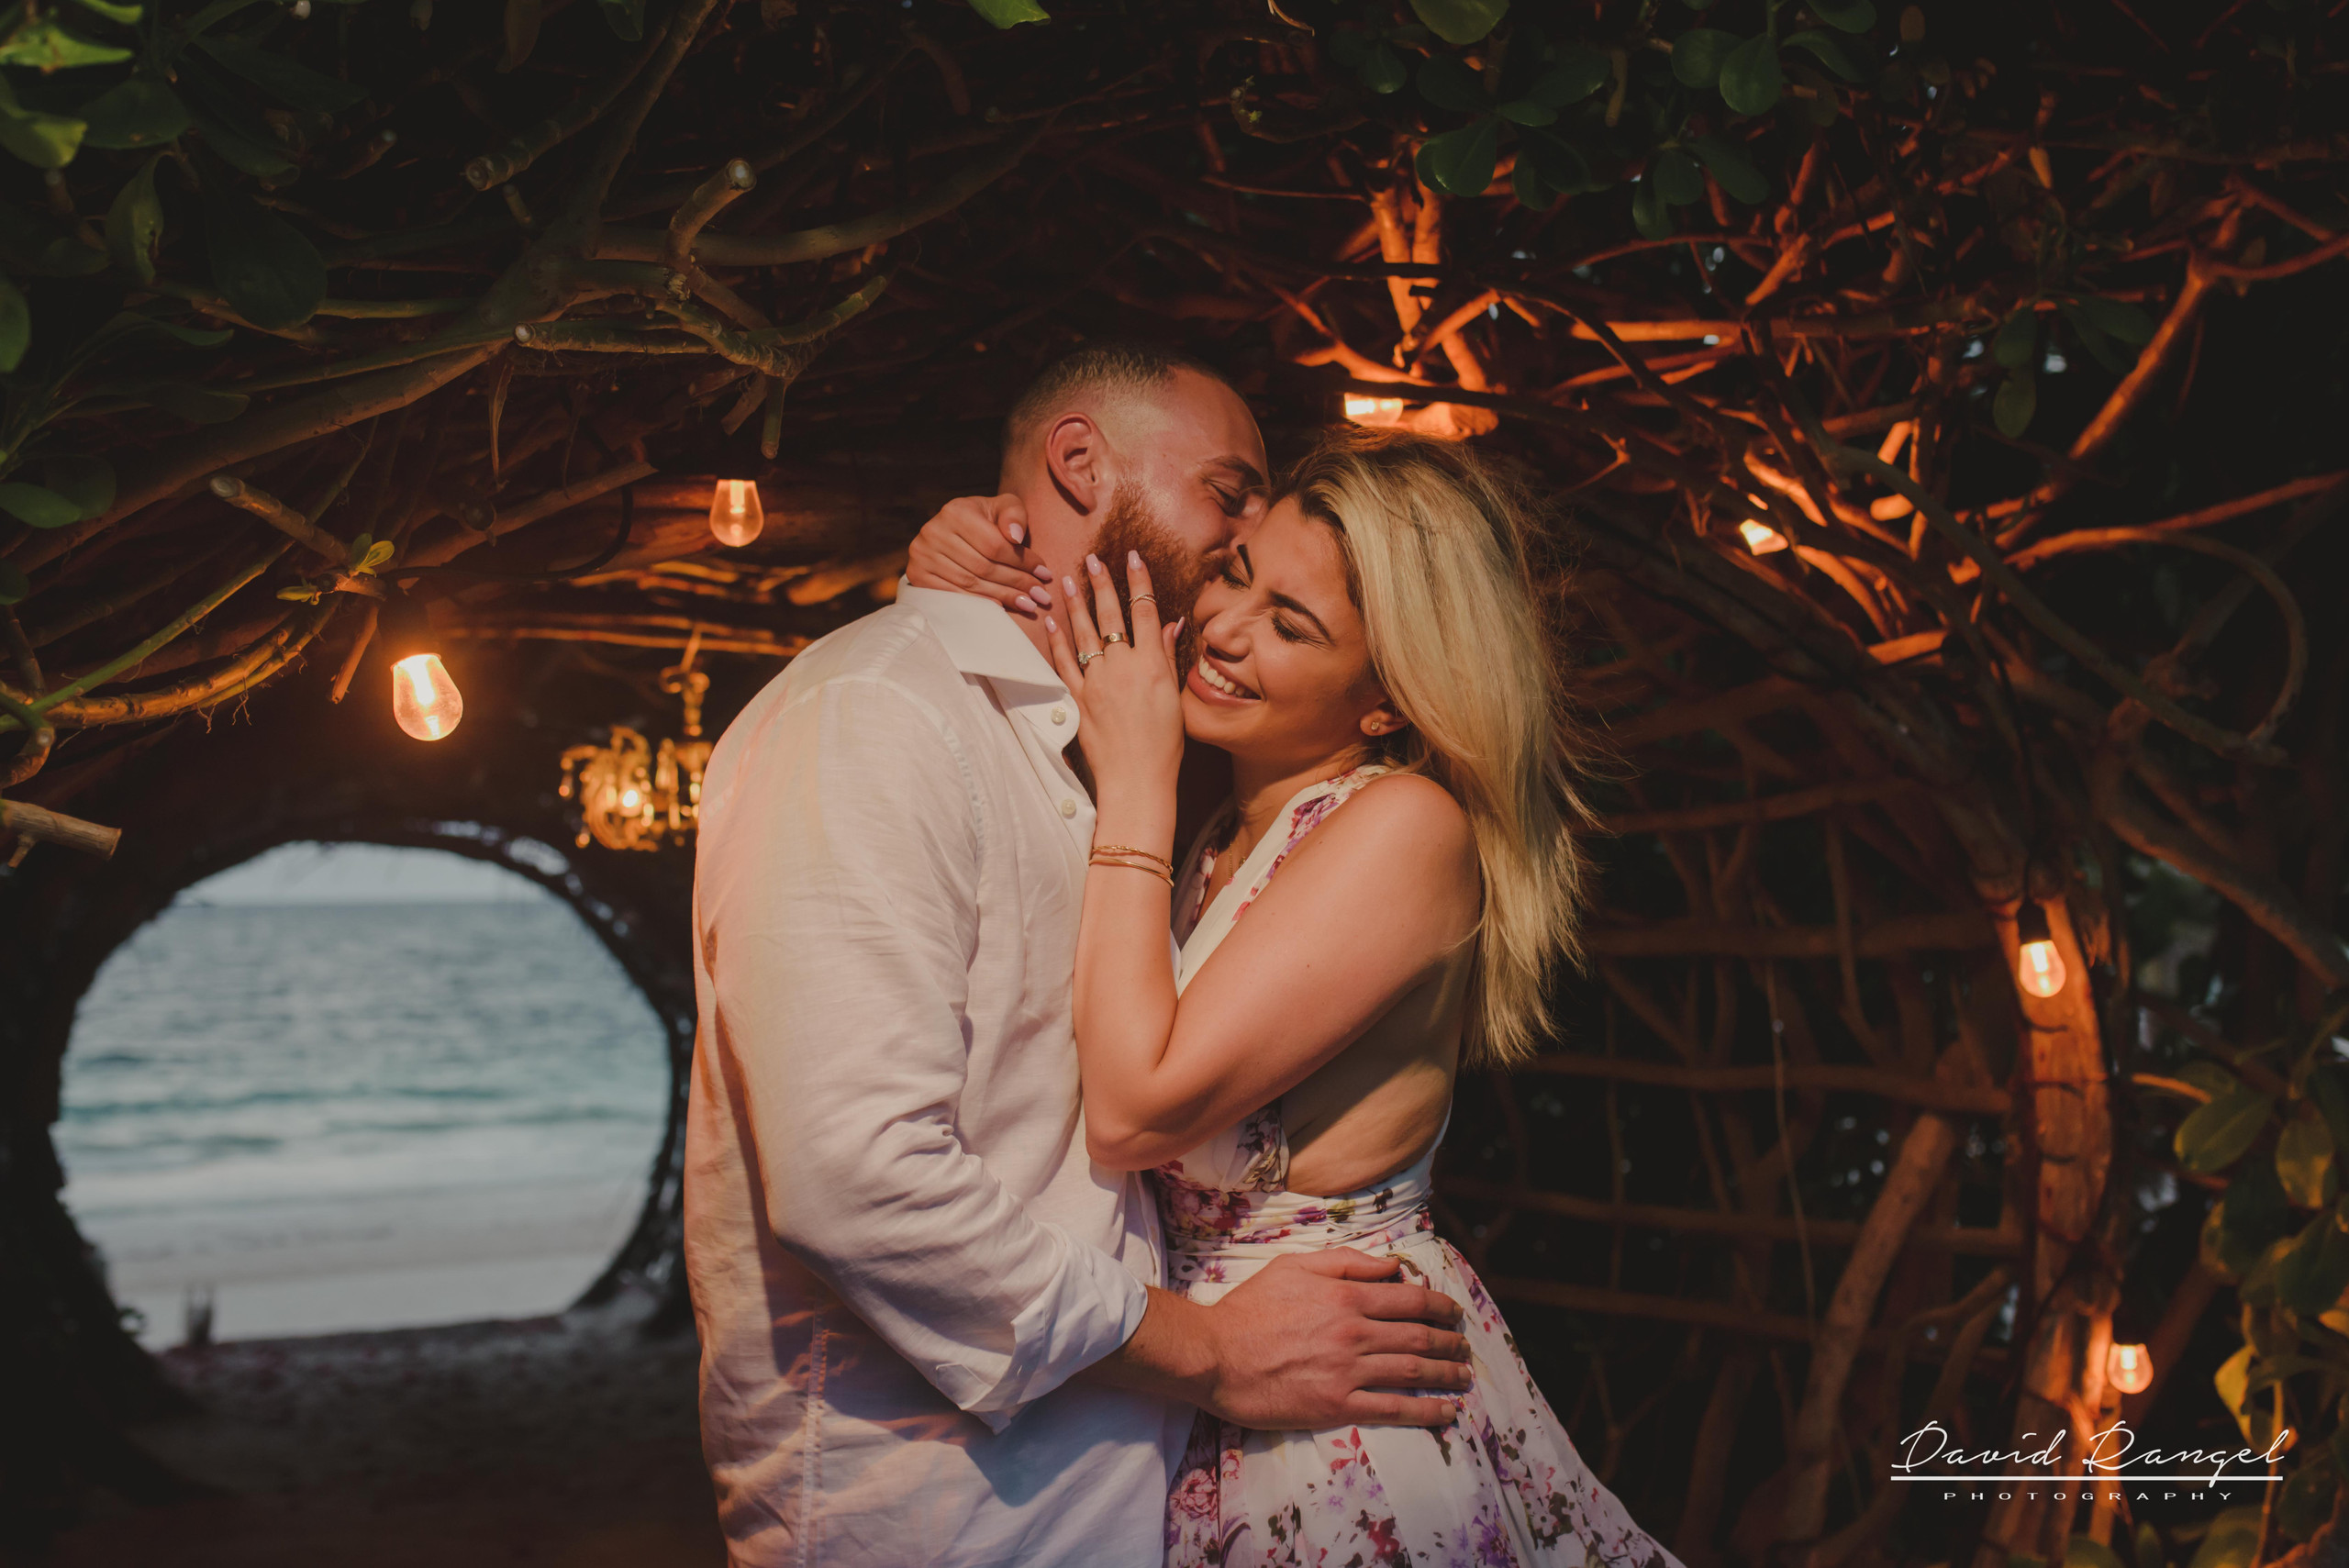 engagement+session+photo+shot+romantic+sorprise+beach+caribe+sand+mexico+tulum+casa+malca+hotel+boutique+girl+man+union+she+say+yes+ring+propose+tunnel